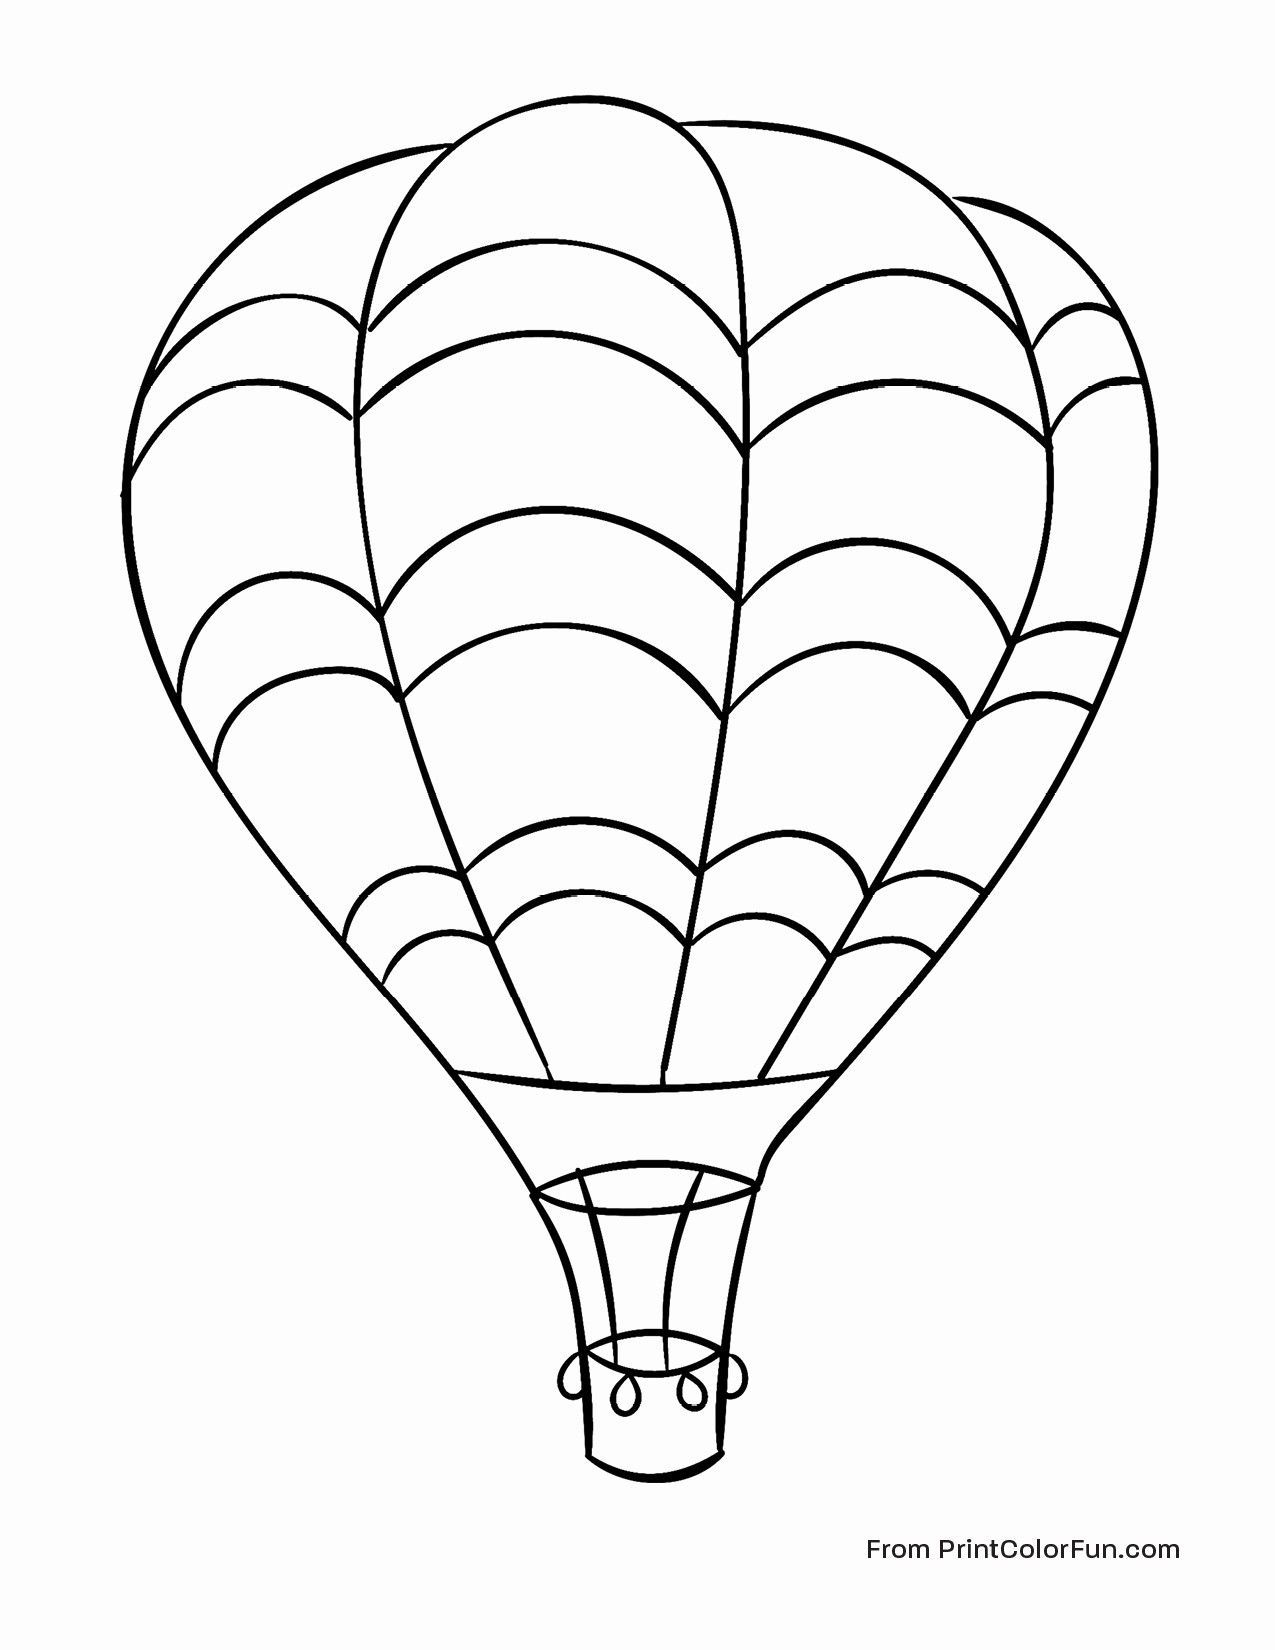 Related Image Air Balloon Hot Air Balloon Unique Coloring Pages